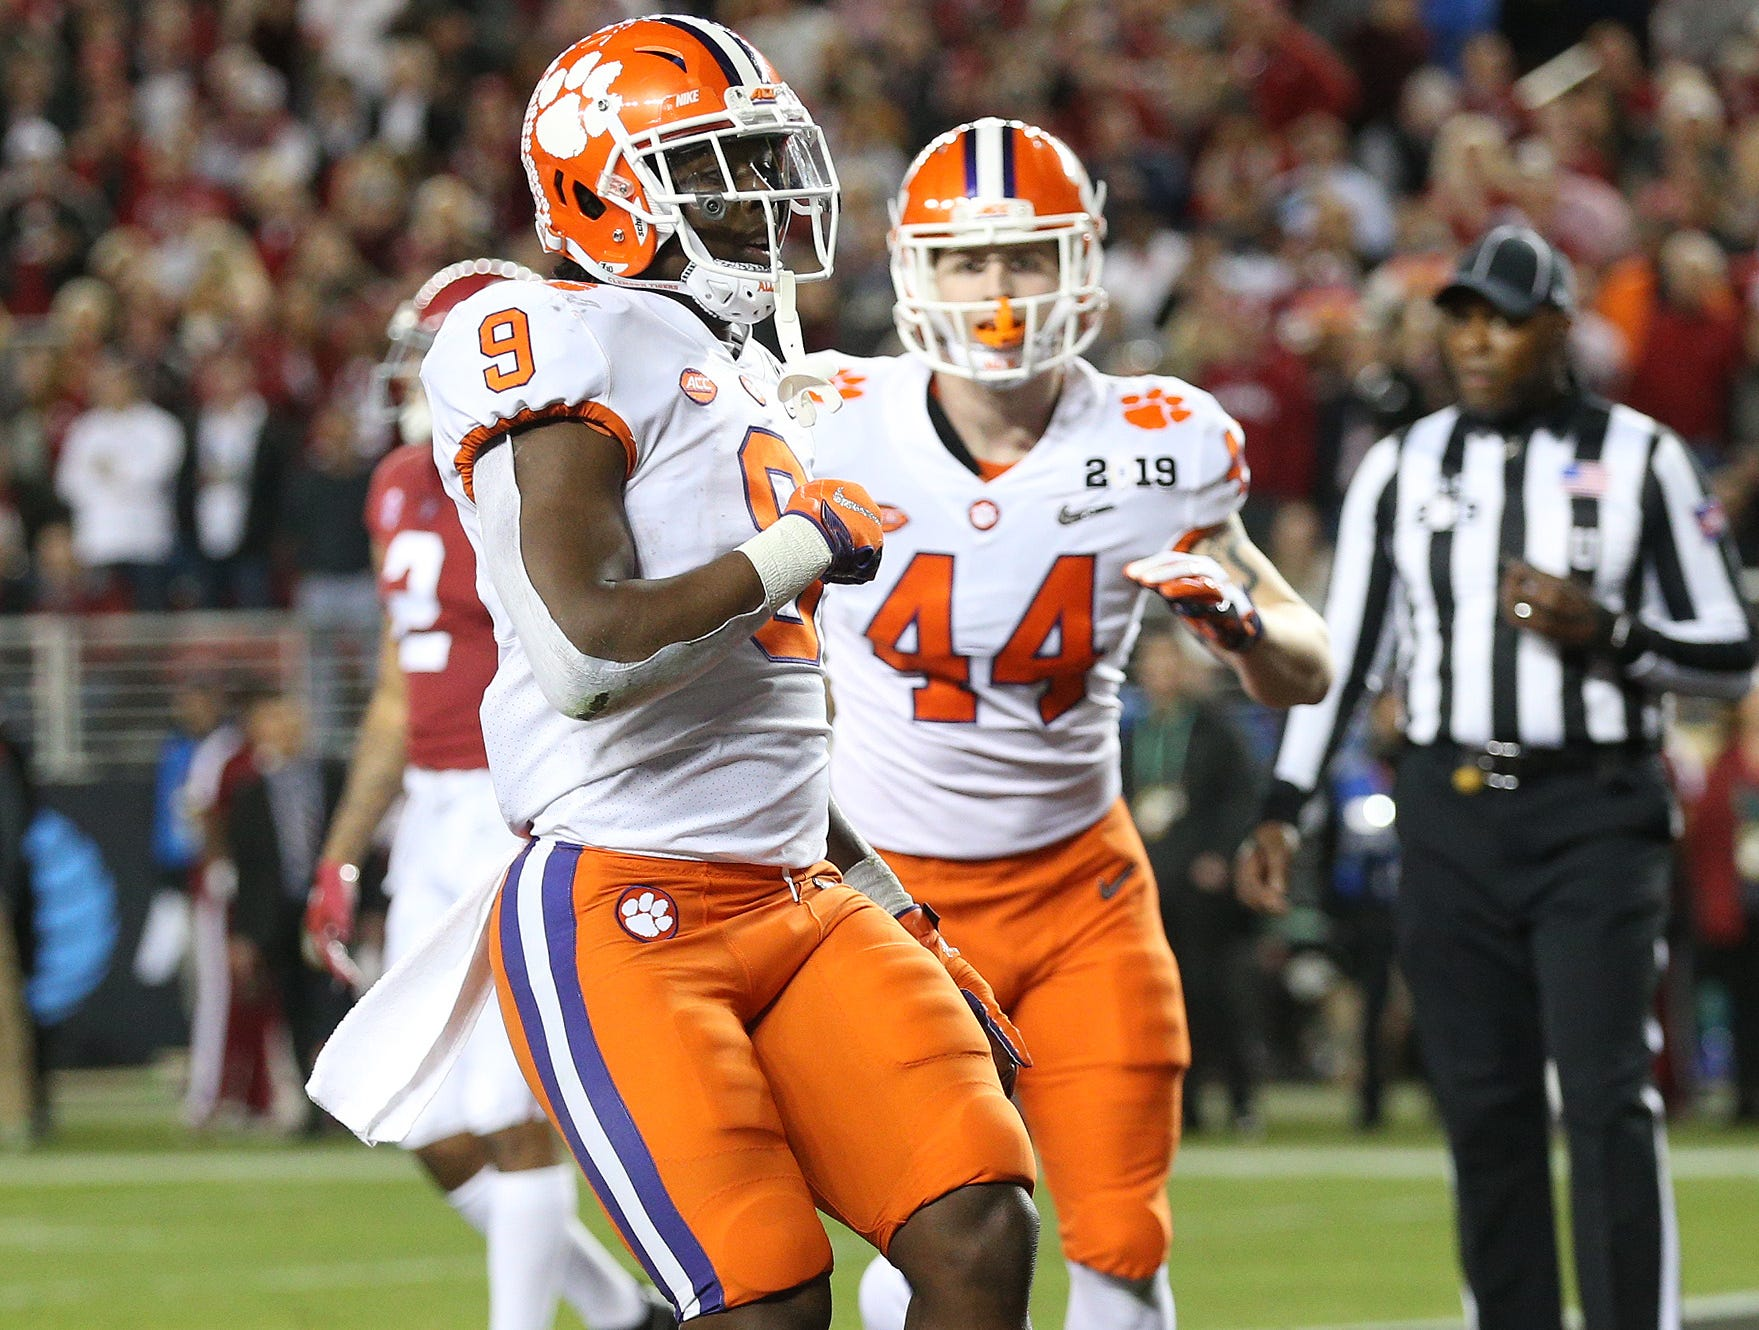 Jan 7, 2019; Santa Clara, CA, USA; Clemson Tigers running back Travis Etienne (9) celebrates after scoring a touchdown in the second quarter against the Alabama Crimson Tide during the 2019 College Football Playoff Championship game at Levi's Stadium. Mandatory Credit: Cary Edmondson-USA TODAY Sports